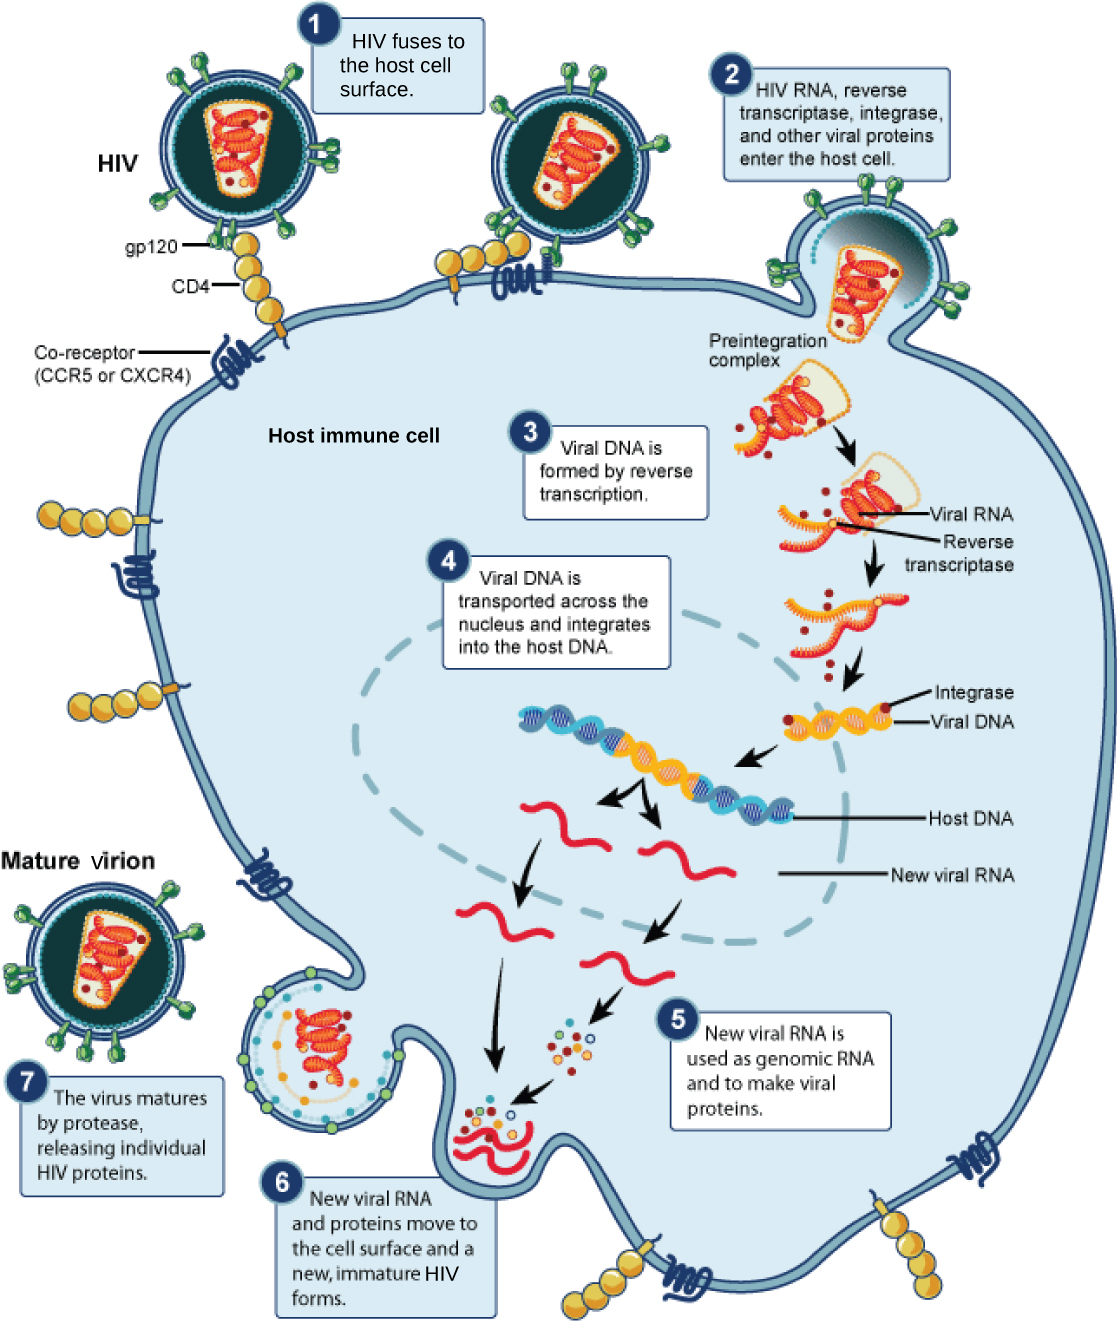 HIV, an enveloped, icosahedral virus, attaches to the CD4 receptor of an immune cell and fuses with the cell membrane. Viral contents are released into the cell, where viral enzymes convert the single-stranded RNA genome into DNA and incorporate it into the host genome